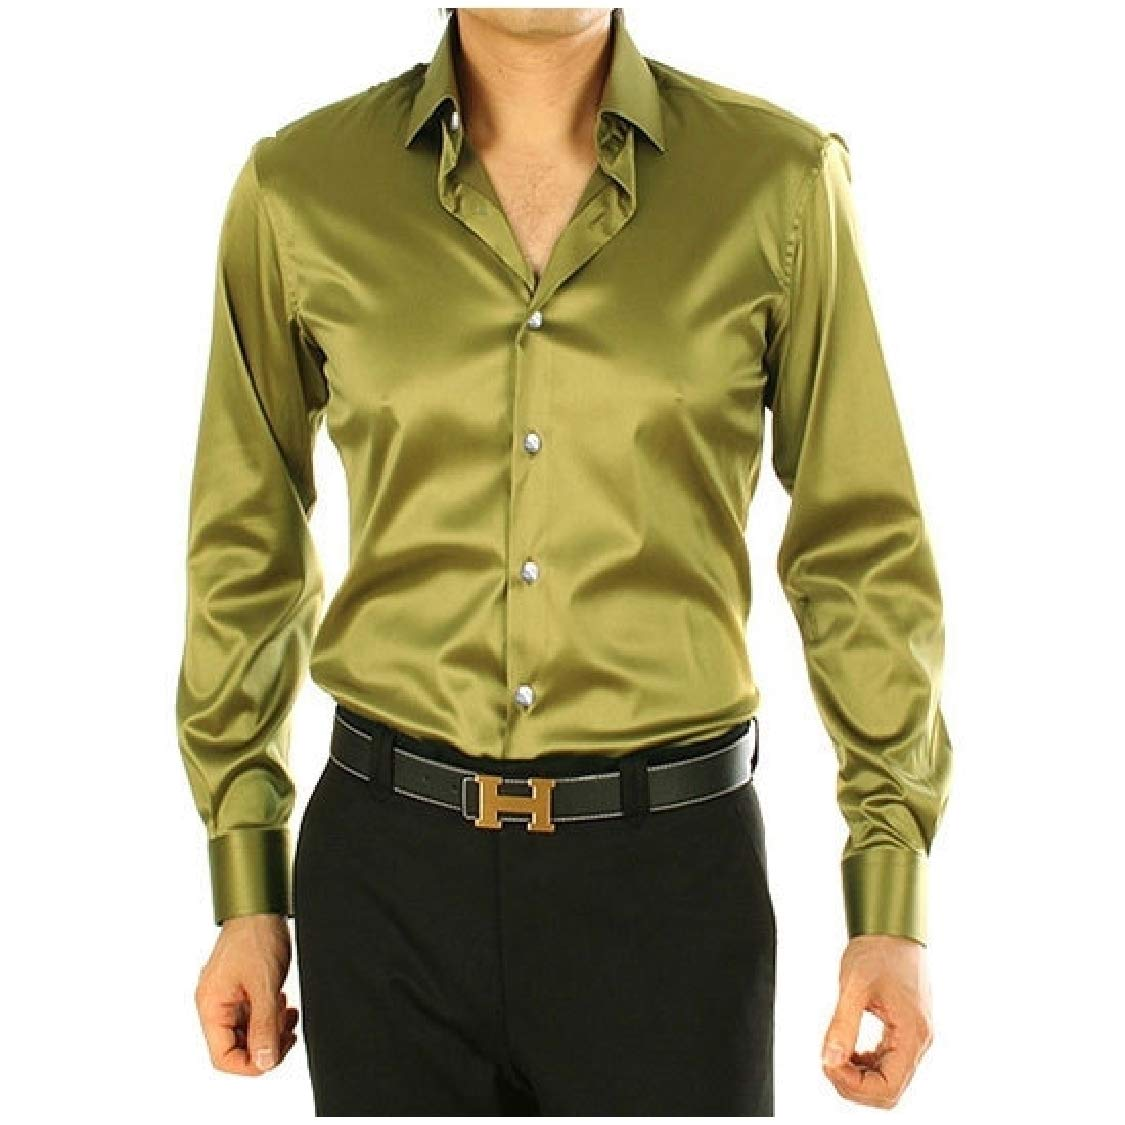 Fieer Mens Pure Color Satin Charmeuse Plus Size Skinny Work Shirt